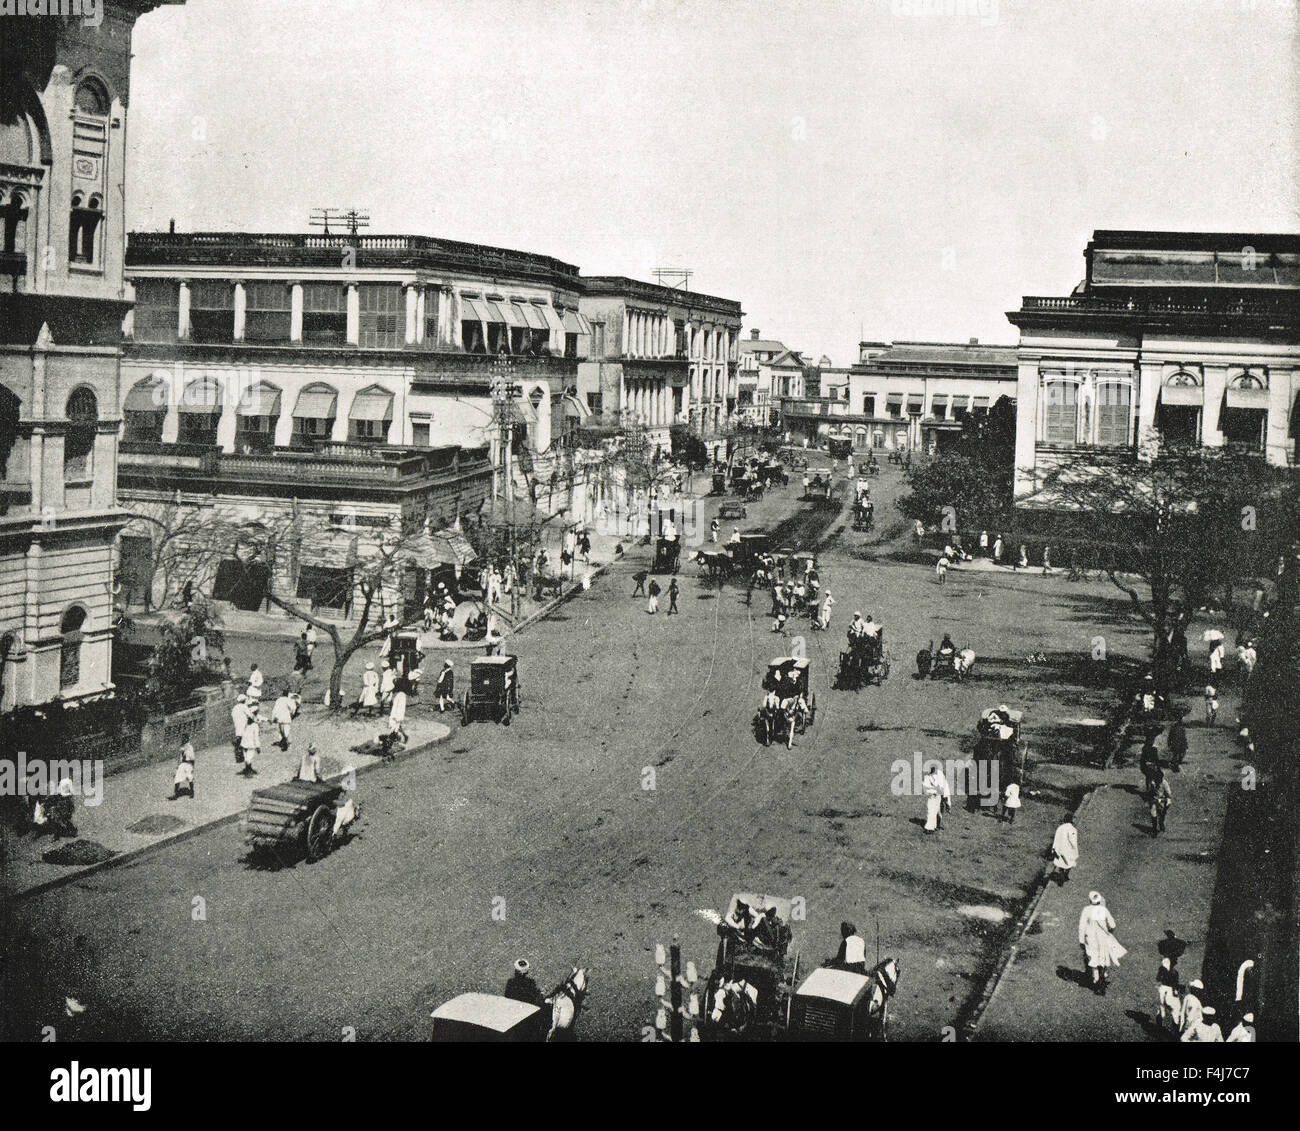 Clive Street, Calcutta ( Now Kolkata ), West Bengal, India in 1894 - Stock Image